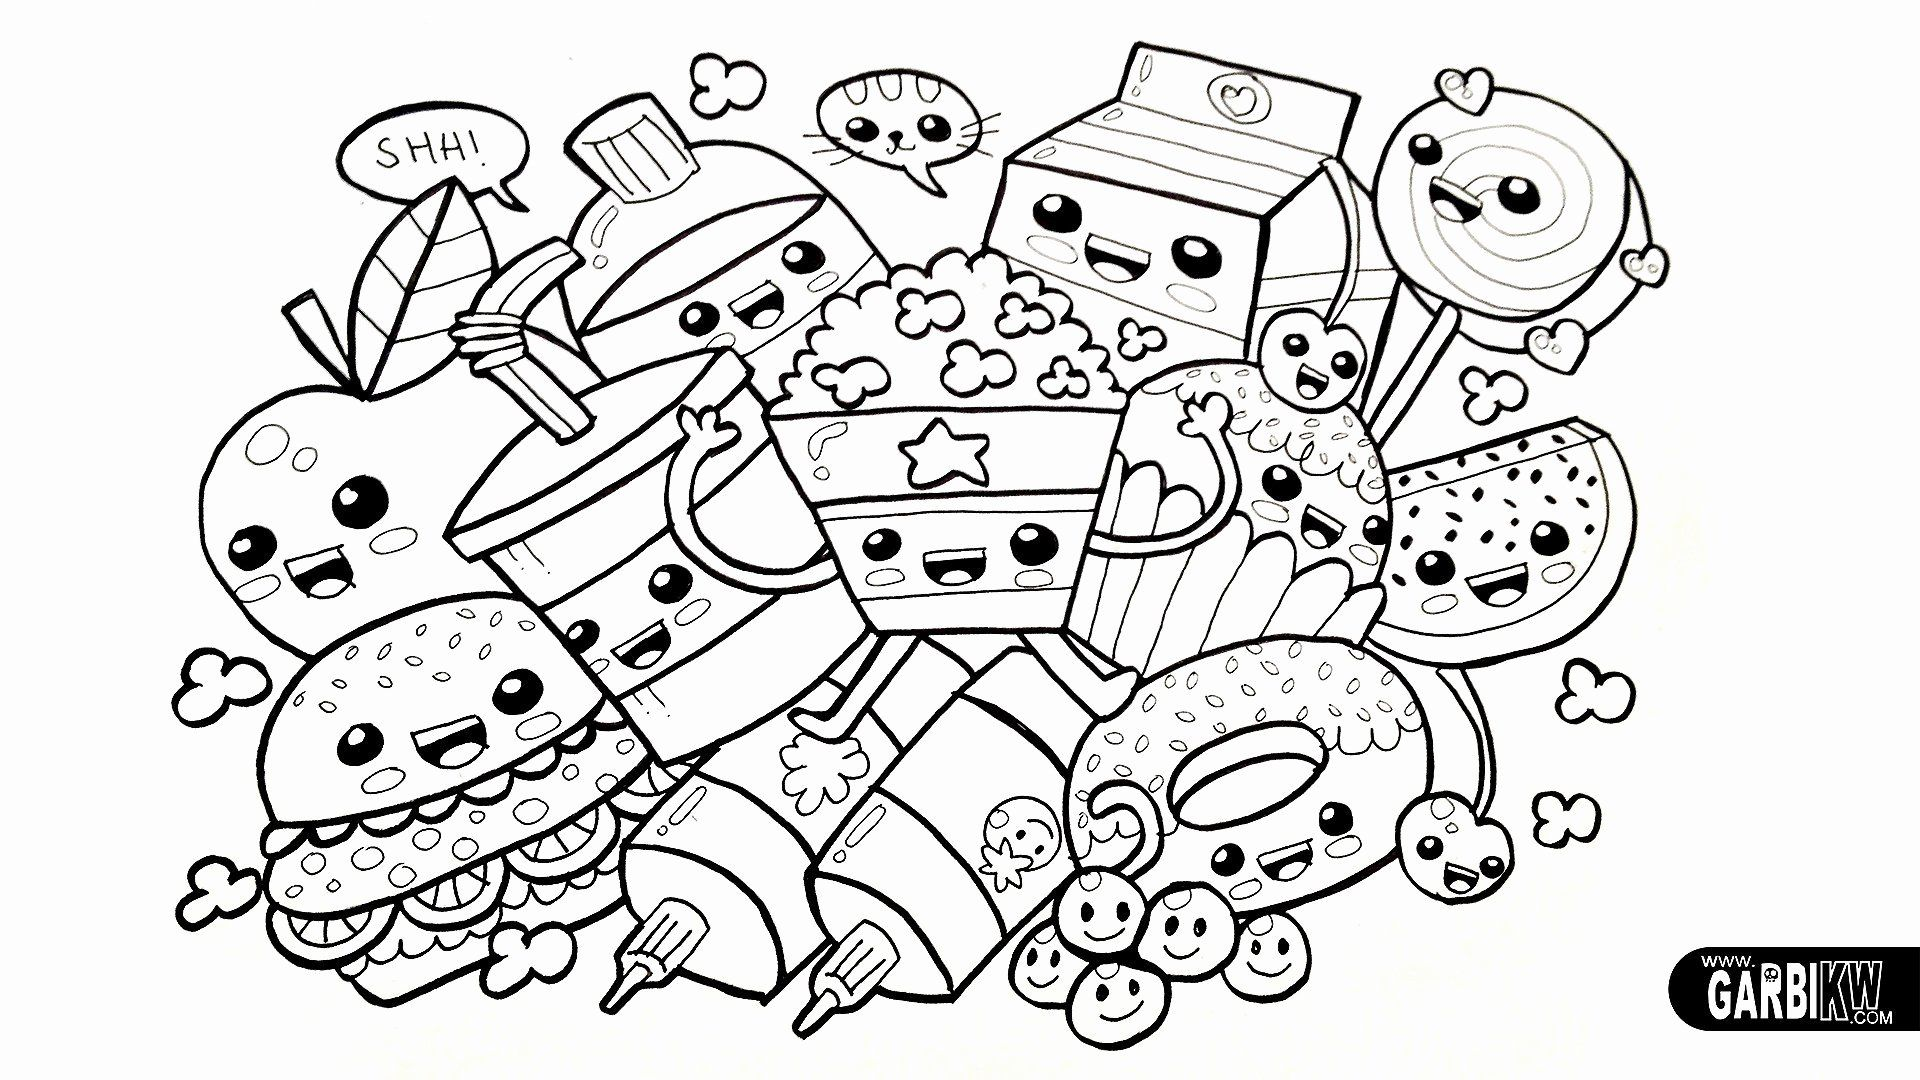 Super Cute Coloring Pages Best Of Coloring Hard Colouring Pages For Kids Free Printable Gcss In 2020 Unicorn Coloring Pages Animal Coloring Books Food Coloring Pages